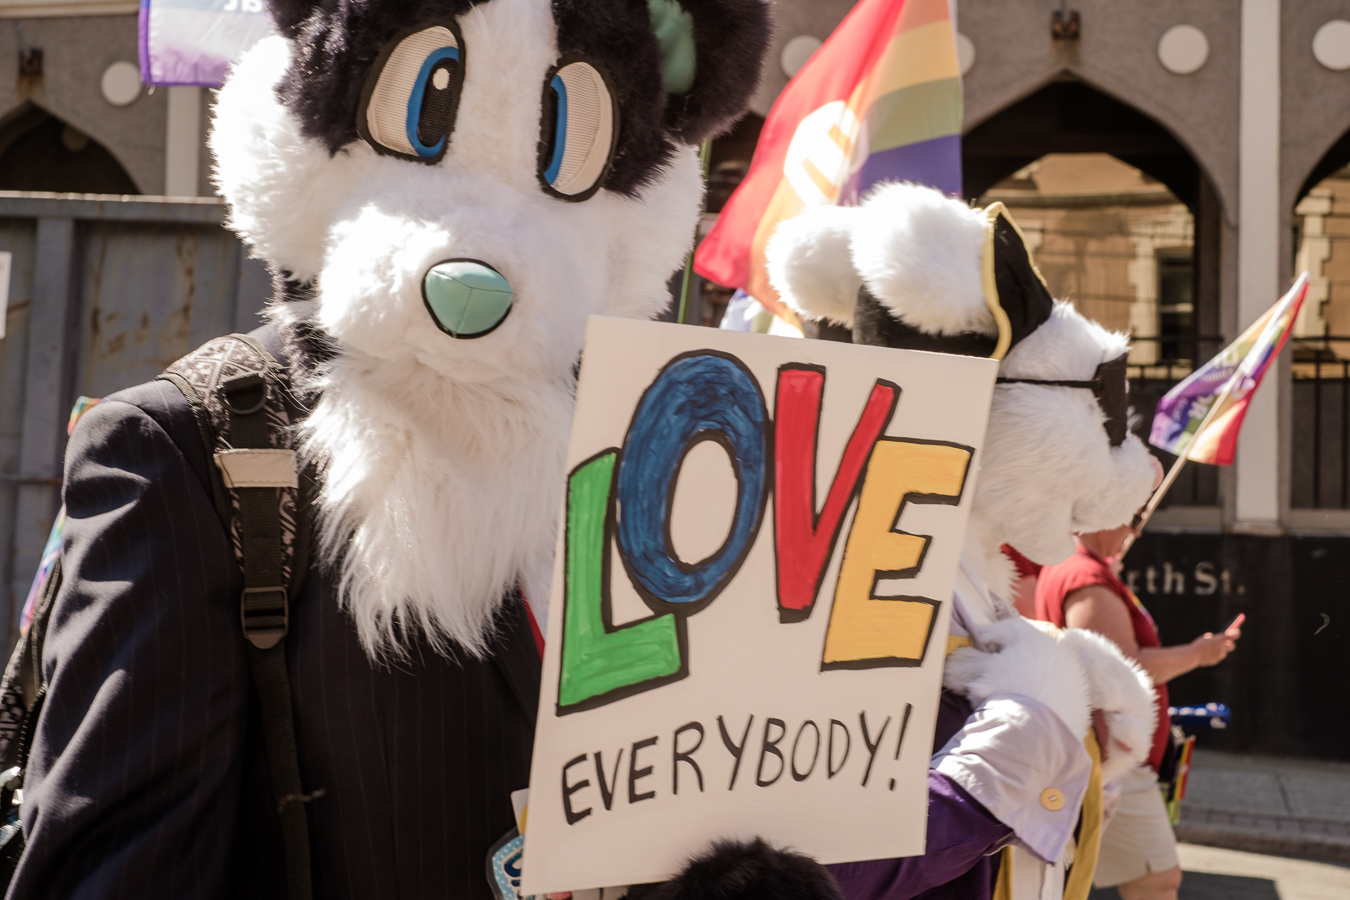 Even the furries came out to show support - Duckworth Street